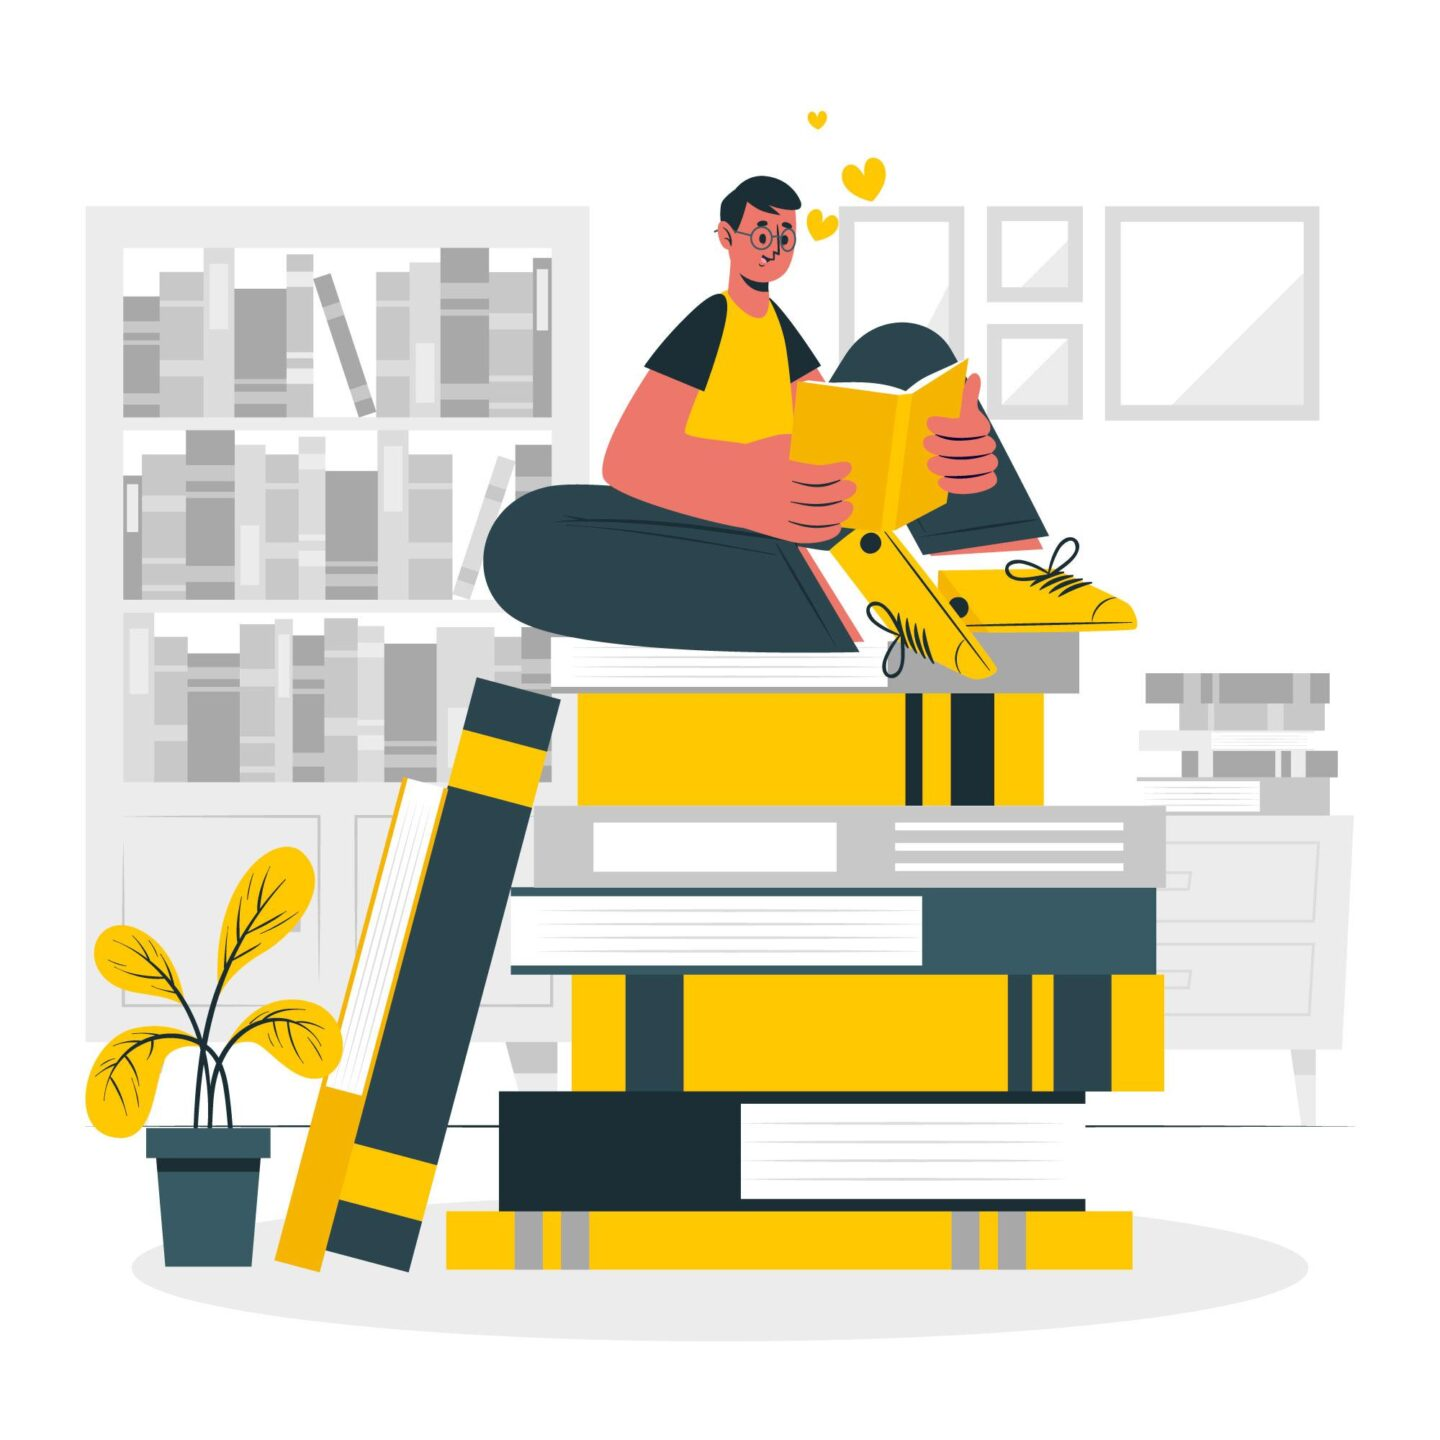 Man reading on a pile of books cartoon